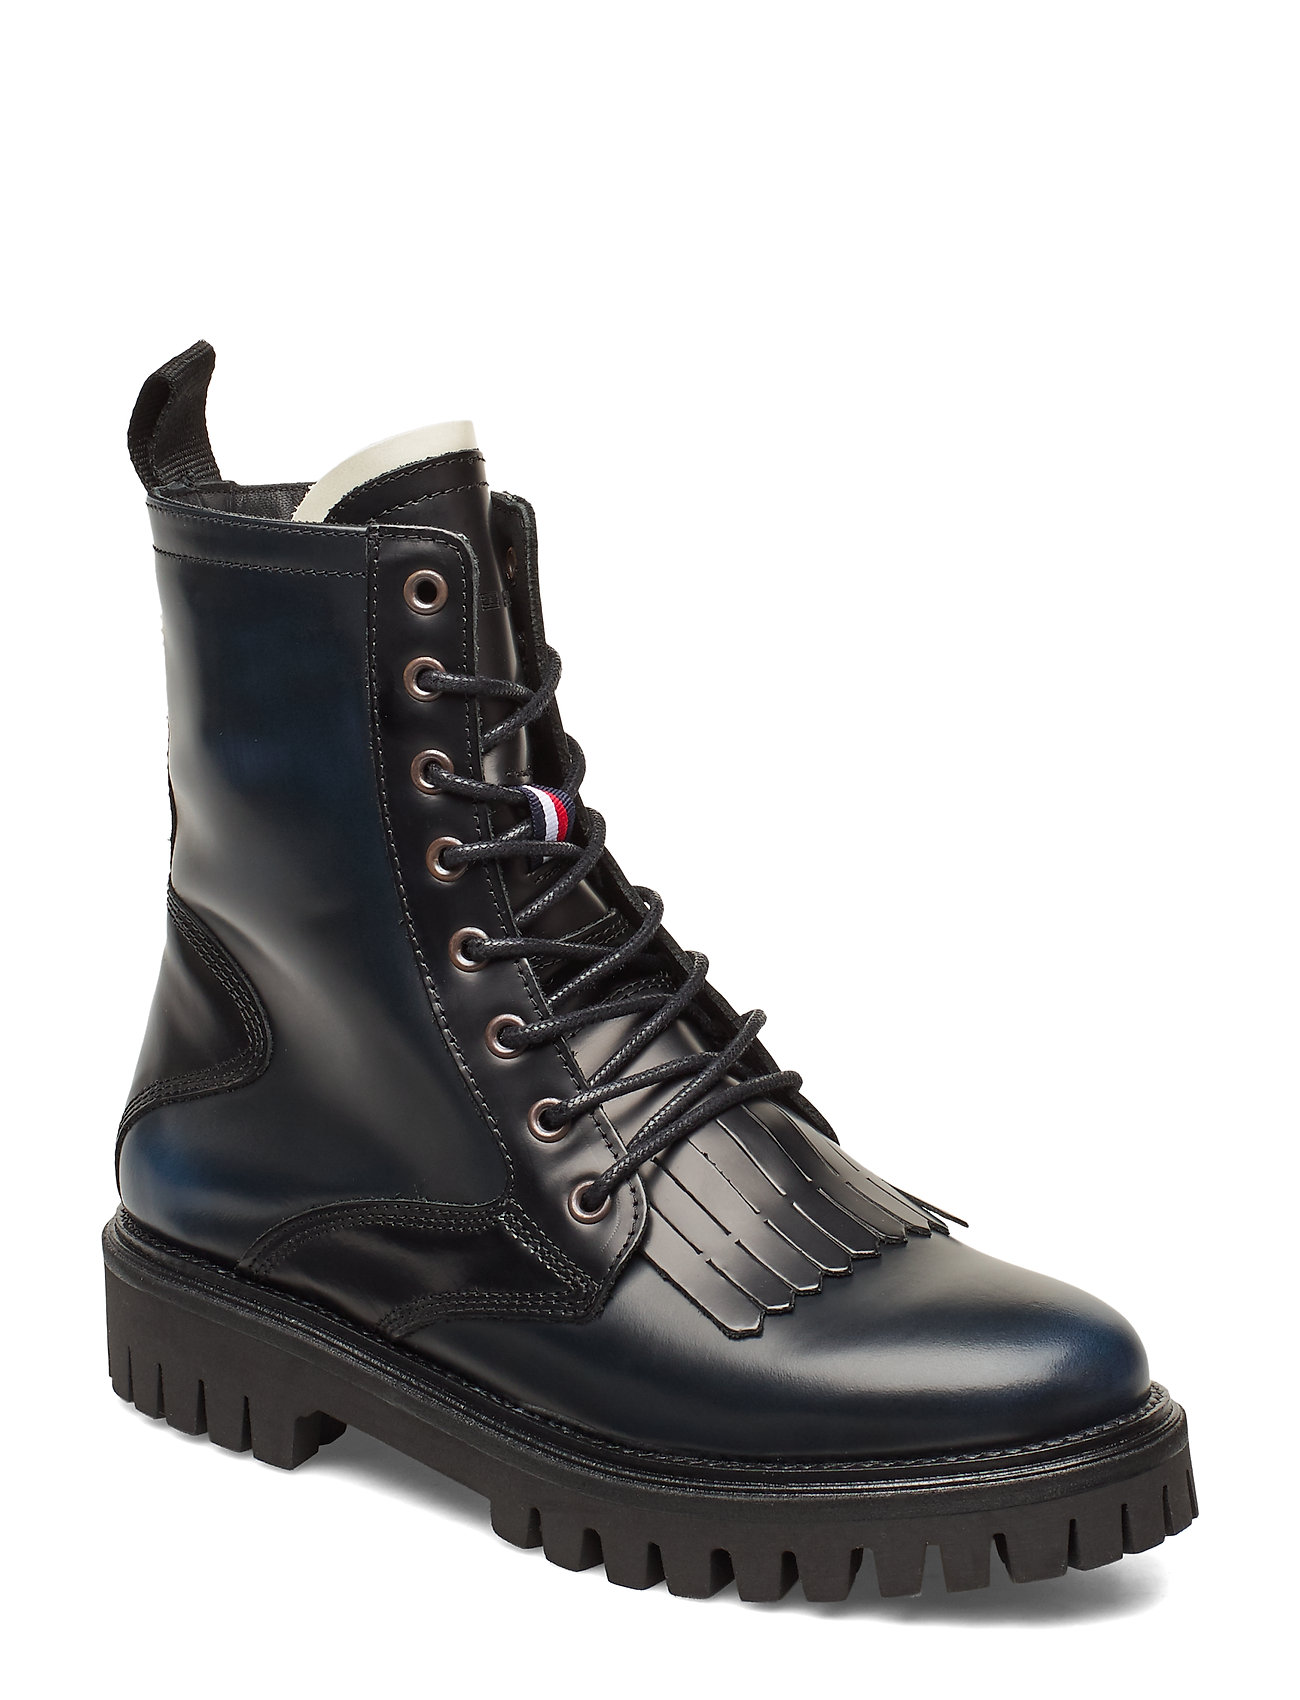 Image of Iconic Polished Boot Shoes Boots Ankle Boots Ankle Boots Flat Heel Sort Tommy Hilfiger (3245421531)